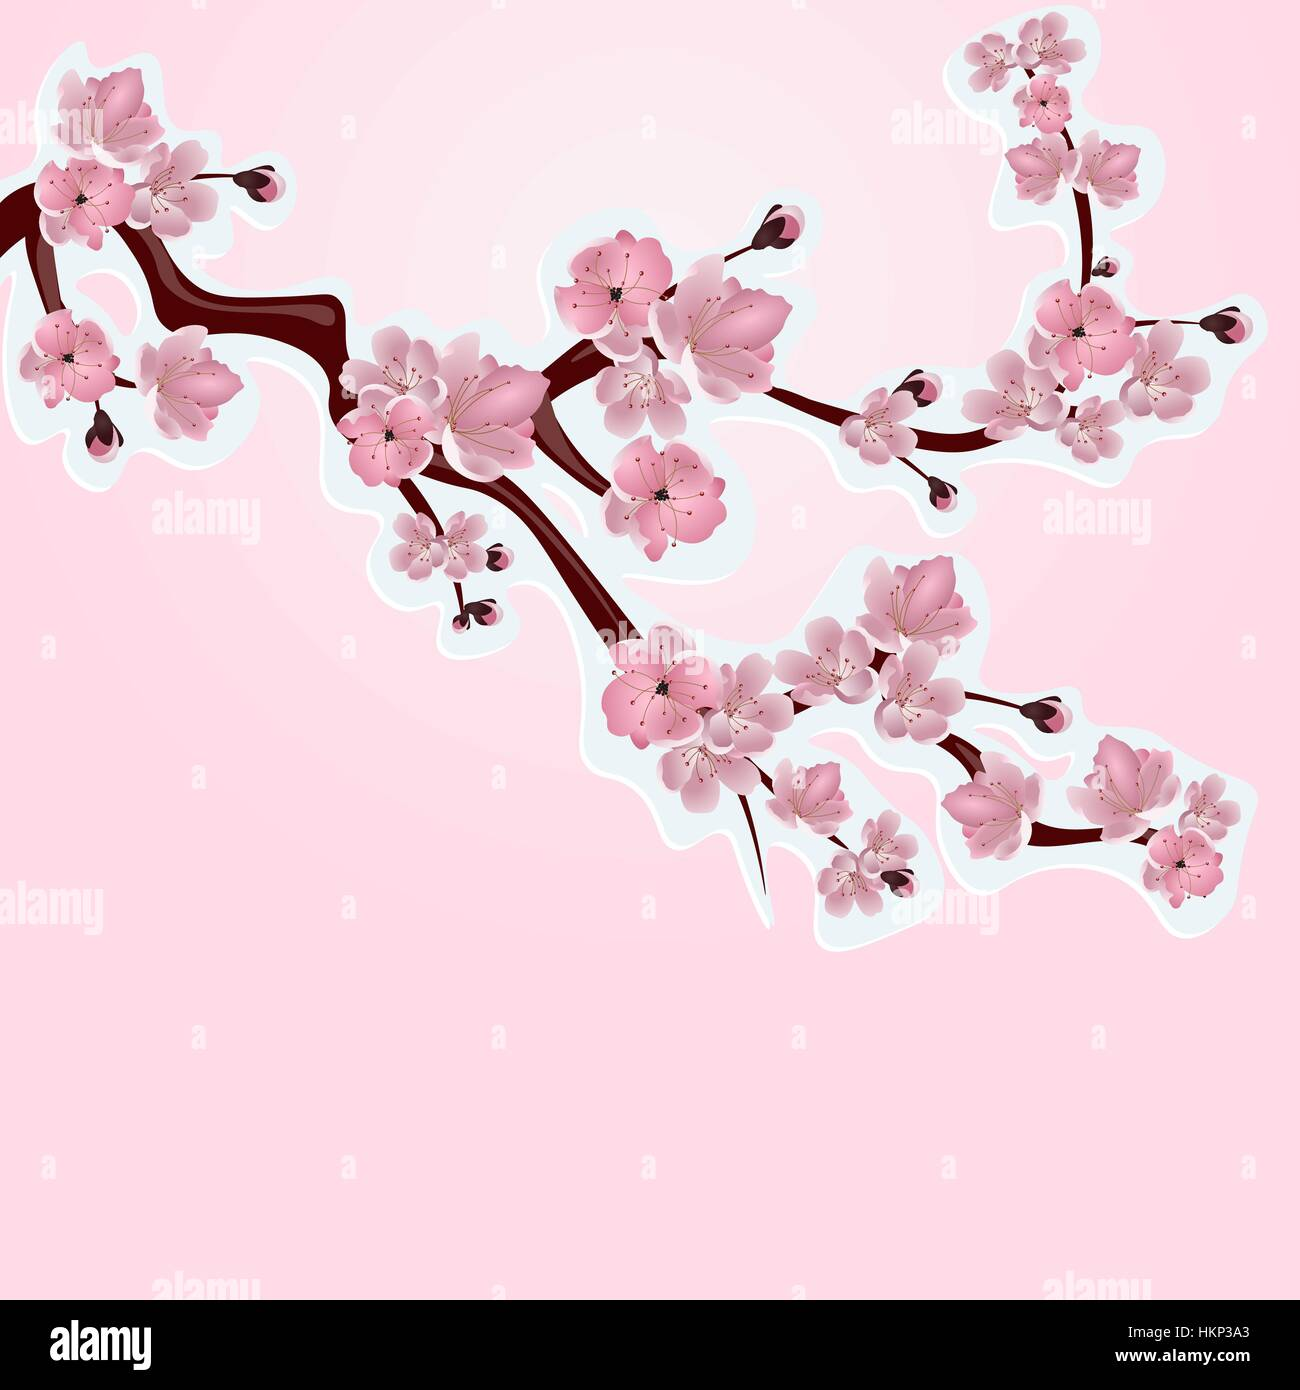 Japanese Cherry Blossom Cut Out Stock Photos Japanese Cherry